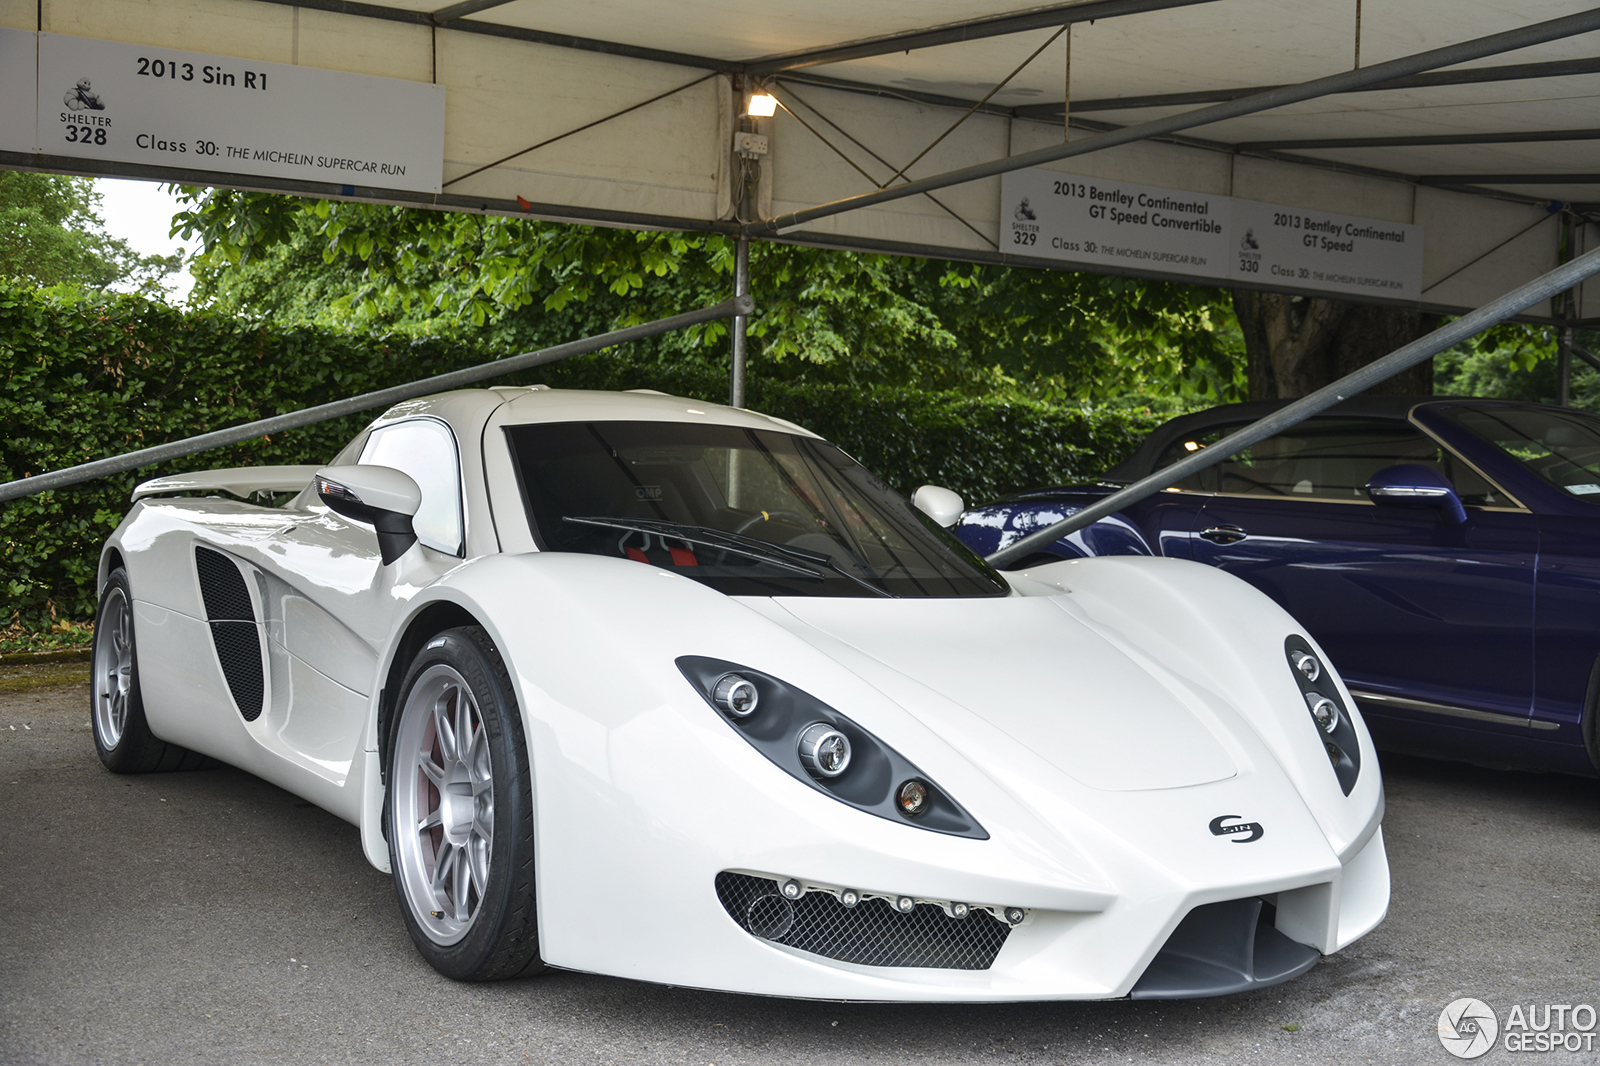 http://log.autogespot.com/07-2013/goodwood_2013/sin_r1/1.jpg?last_change=1384335868